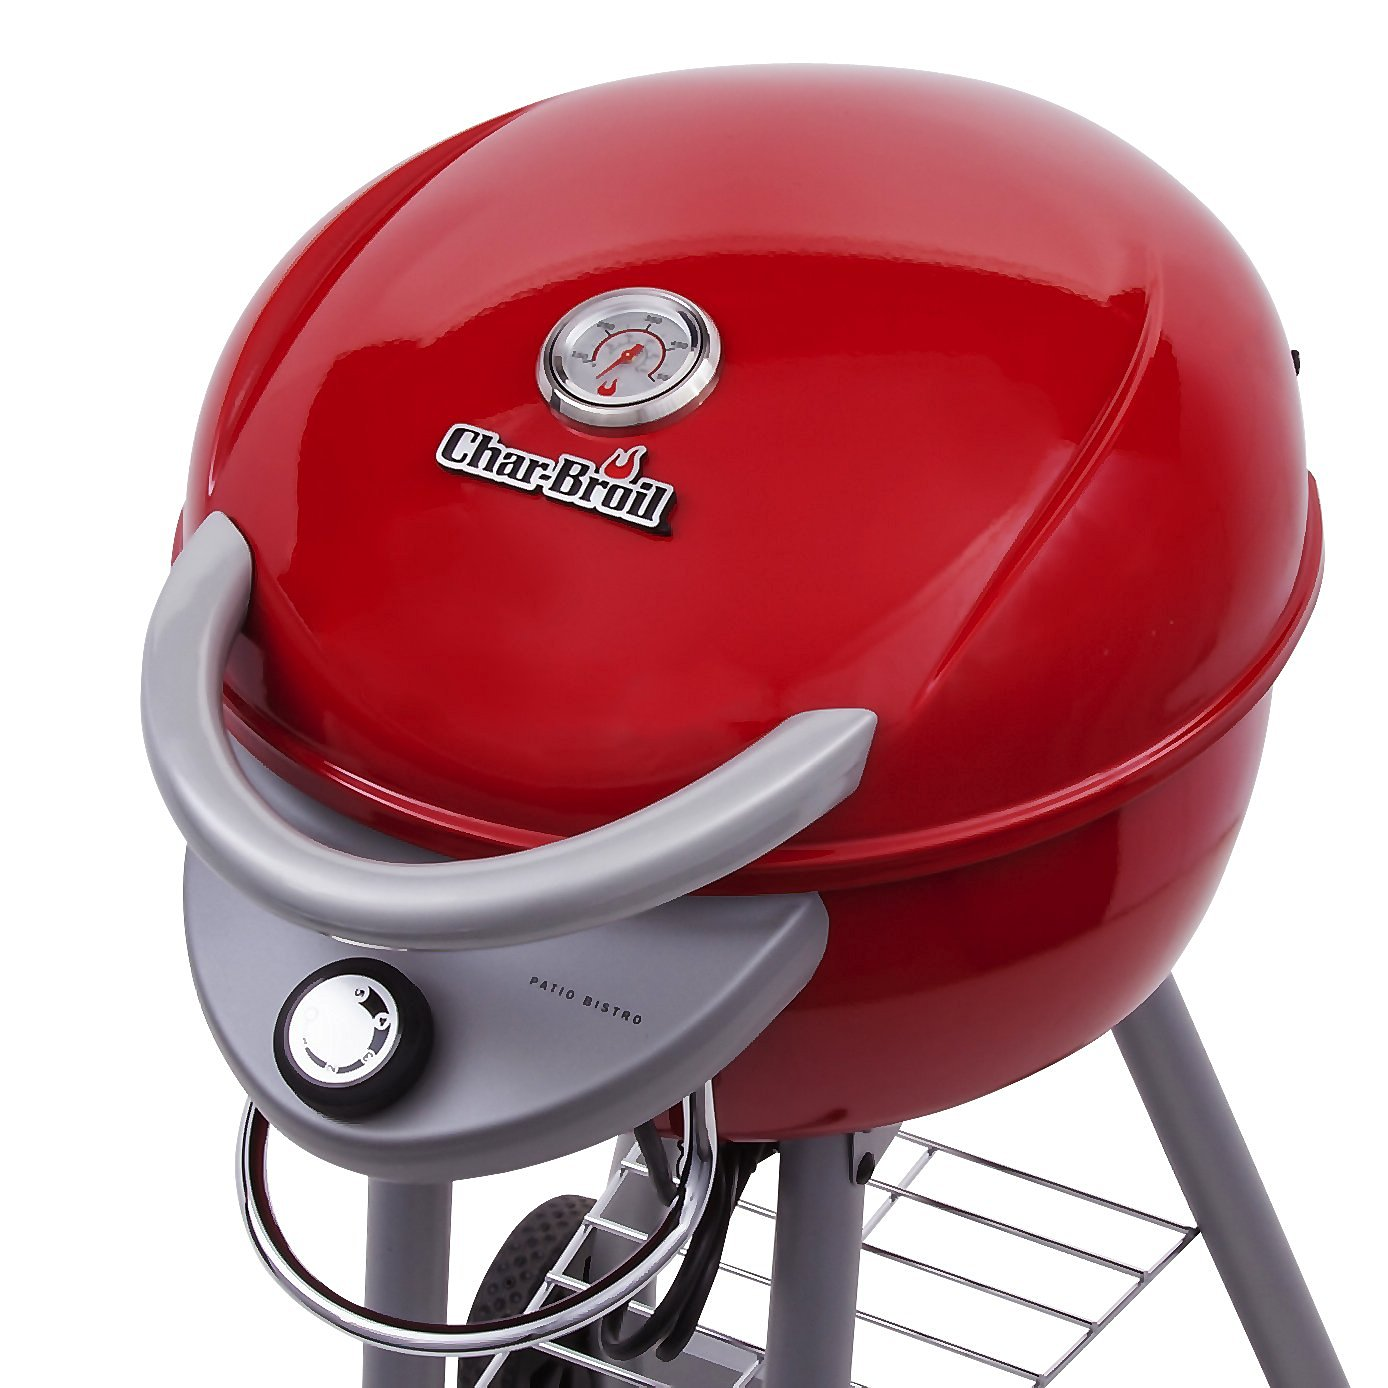 bistro games party broil grill patio allthingstailgating outdoorgrills bbq sports tailgate char football